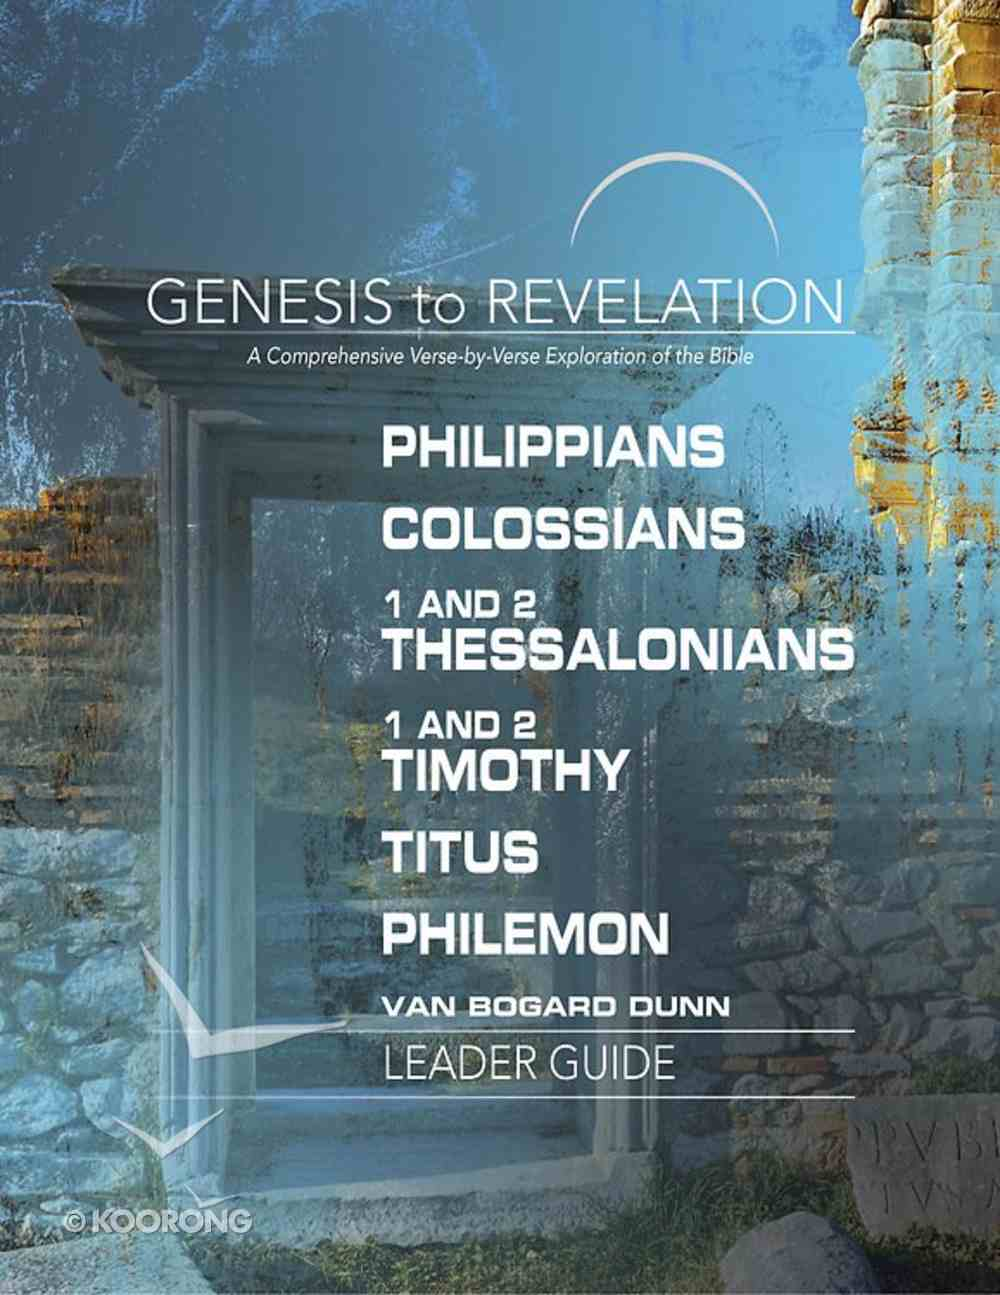 Philippians, Colossians, 1&2 Thessalonians, 1&2 Timothy, Titus, Philemon : A Comprehensive Verse-By-Verse Exploration of the Bible (Leader Guide) (Genesis To Revelation Series) eBook